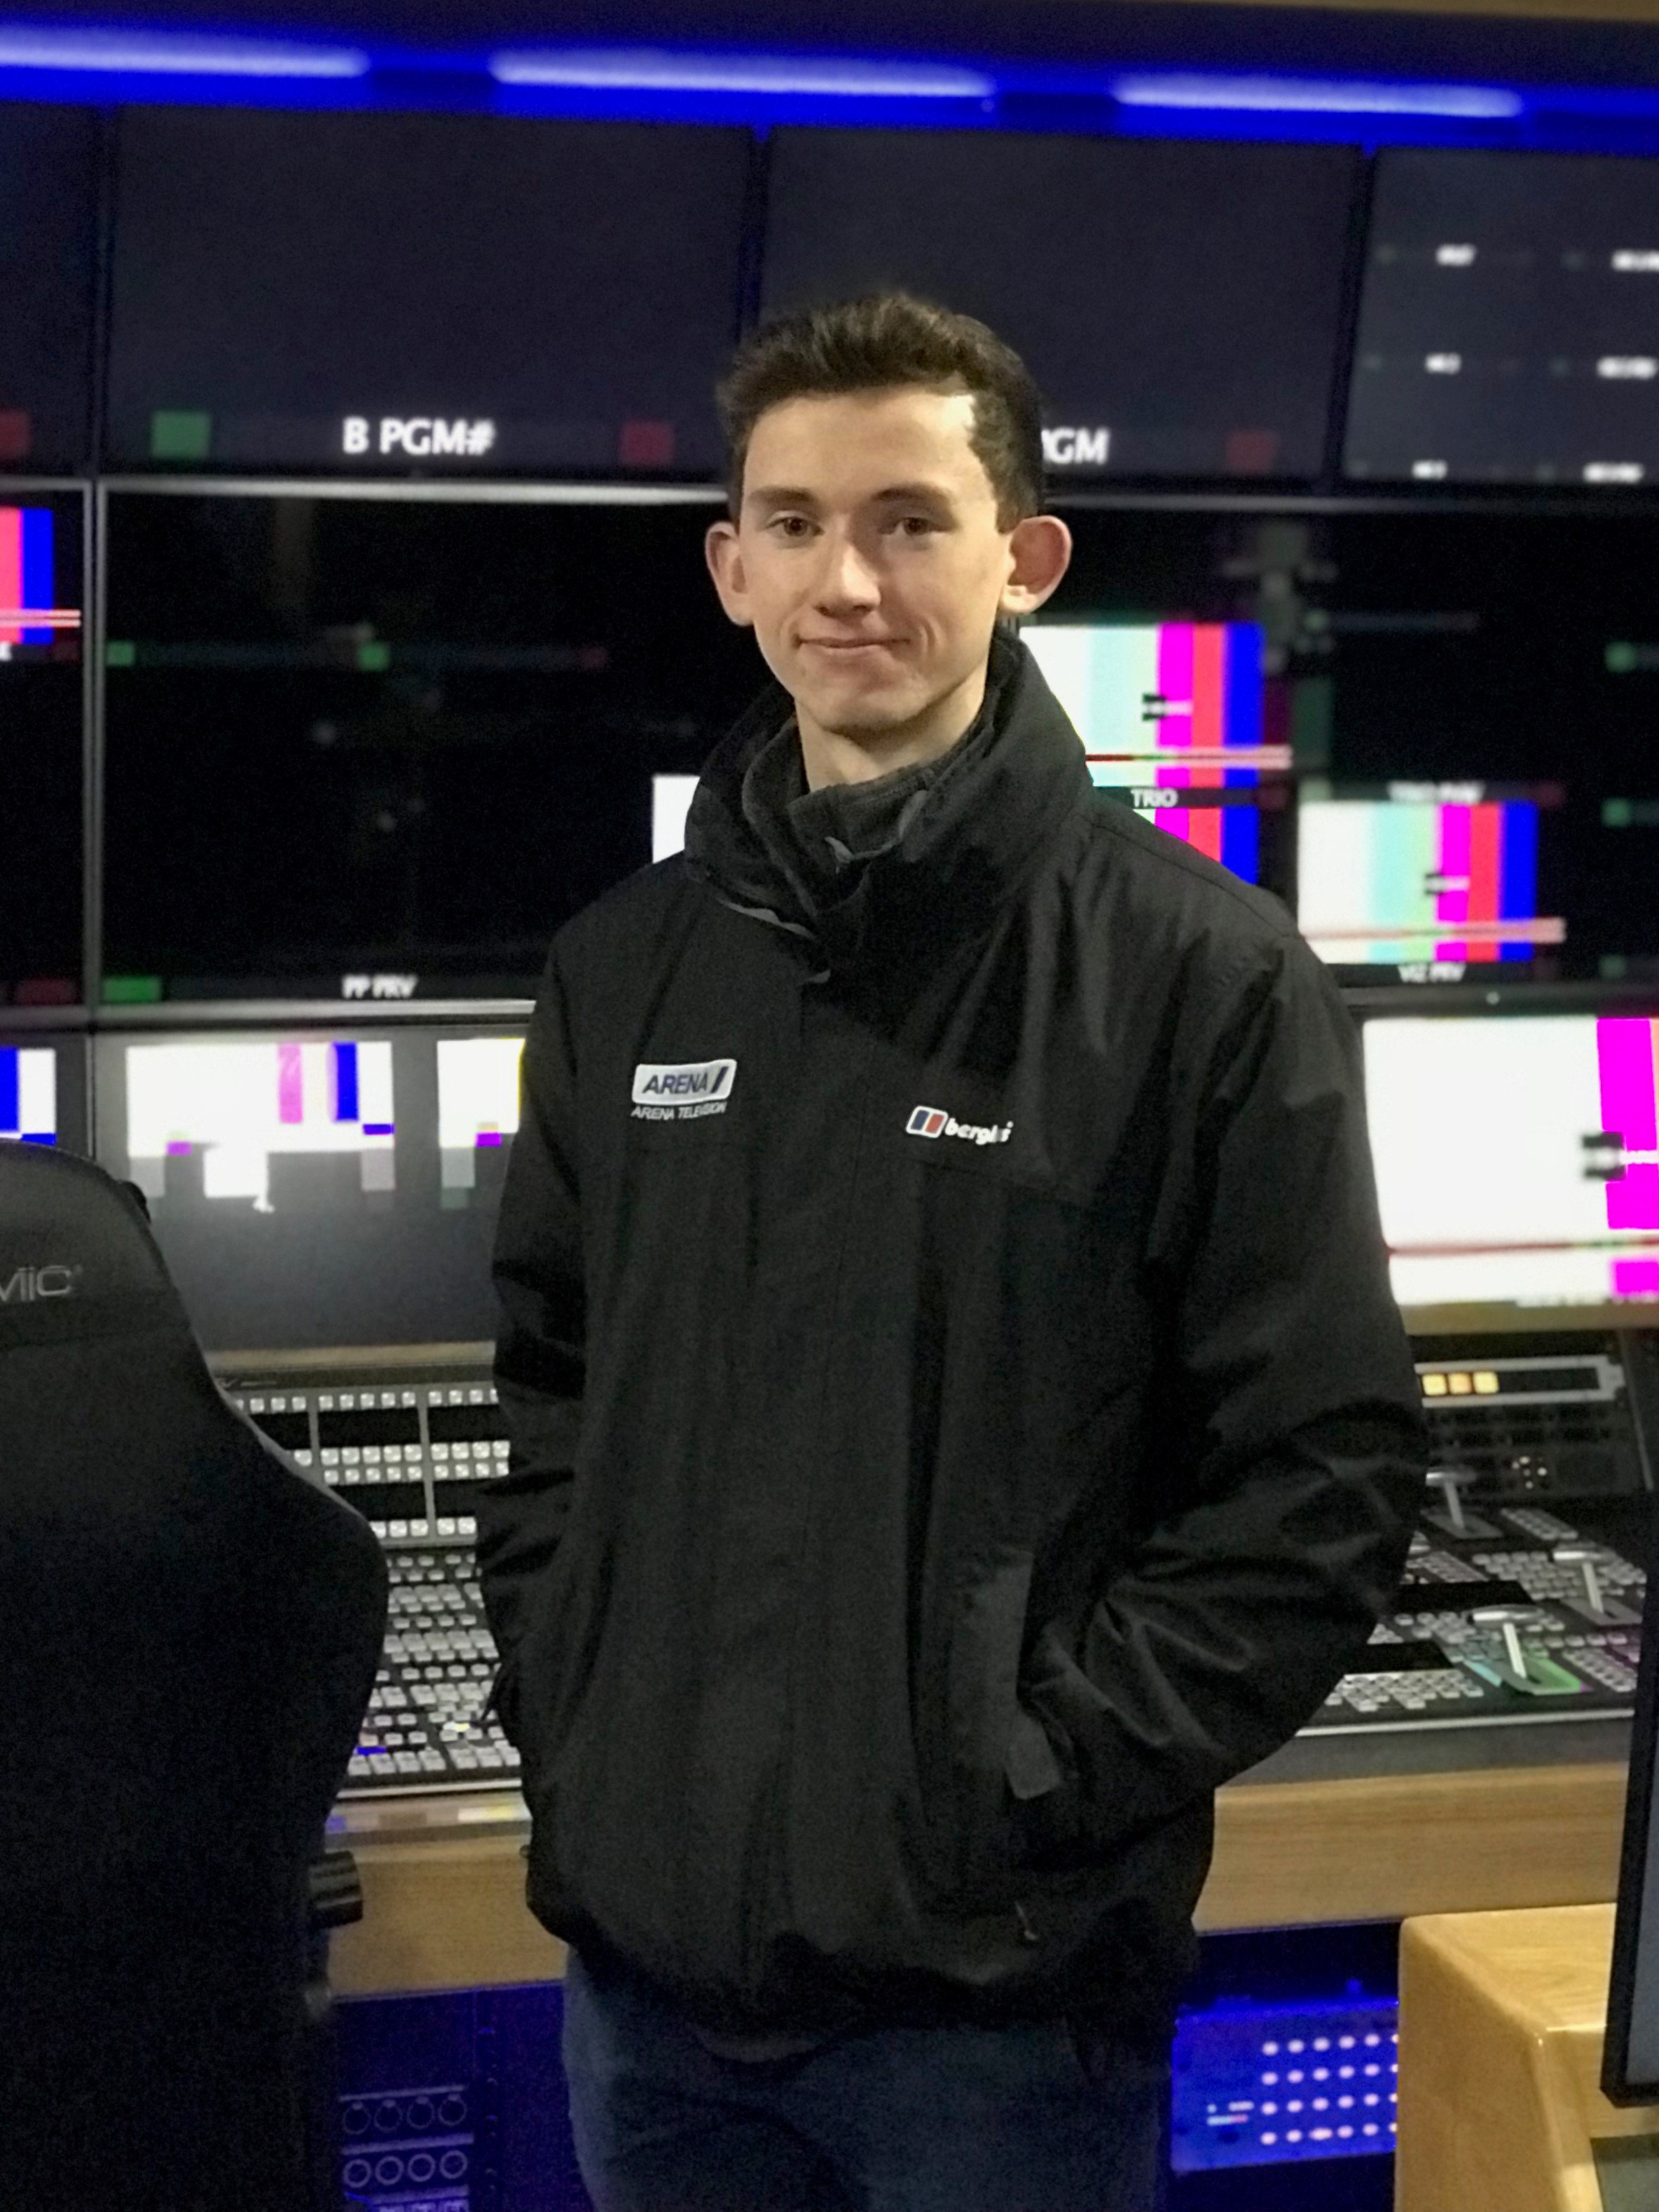 Student in front of TV production gallery